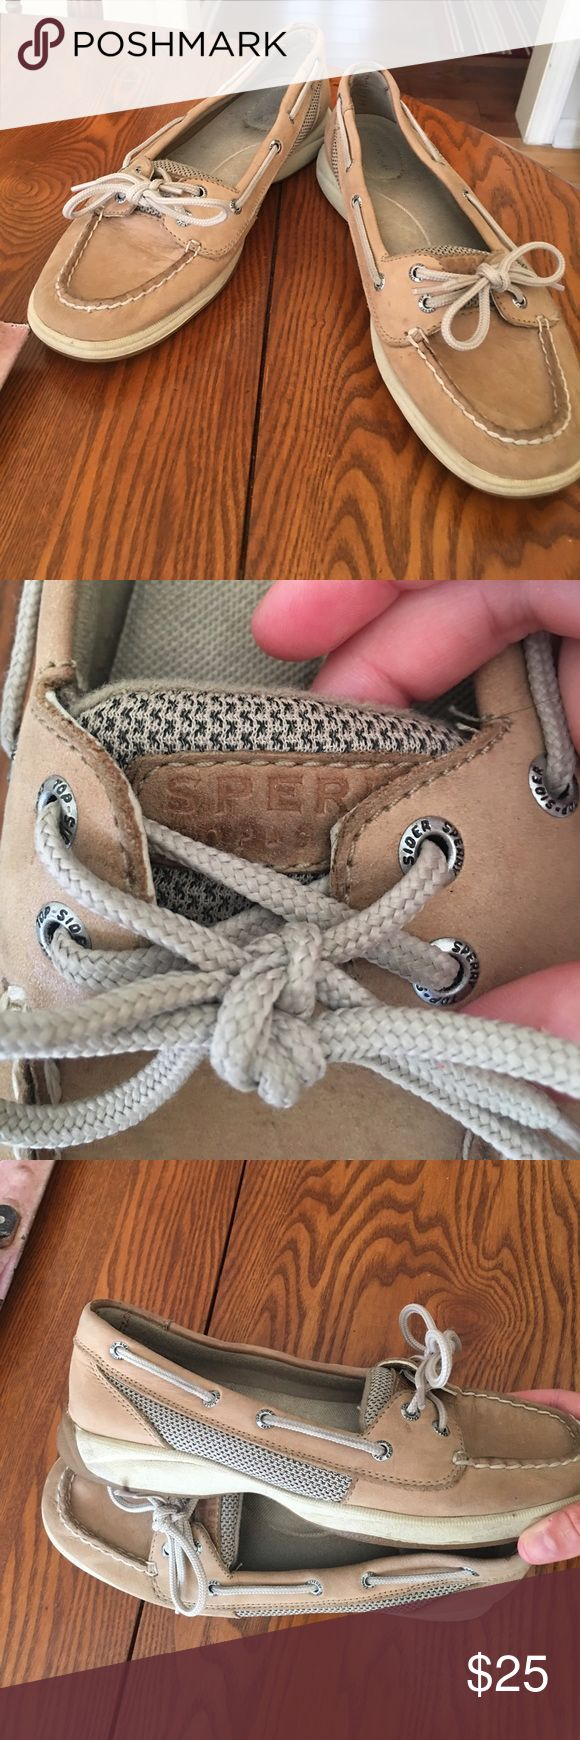 Girls Sperry's Alittle worn but no rips or tears or scratches! For the most part look new! Sperry Top-Sider Shoes Sandals